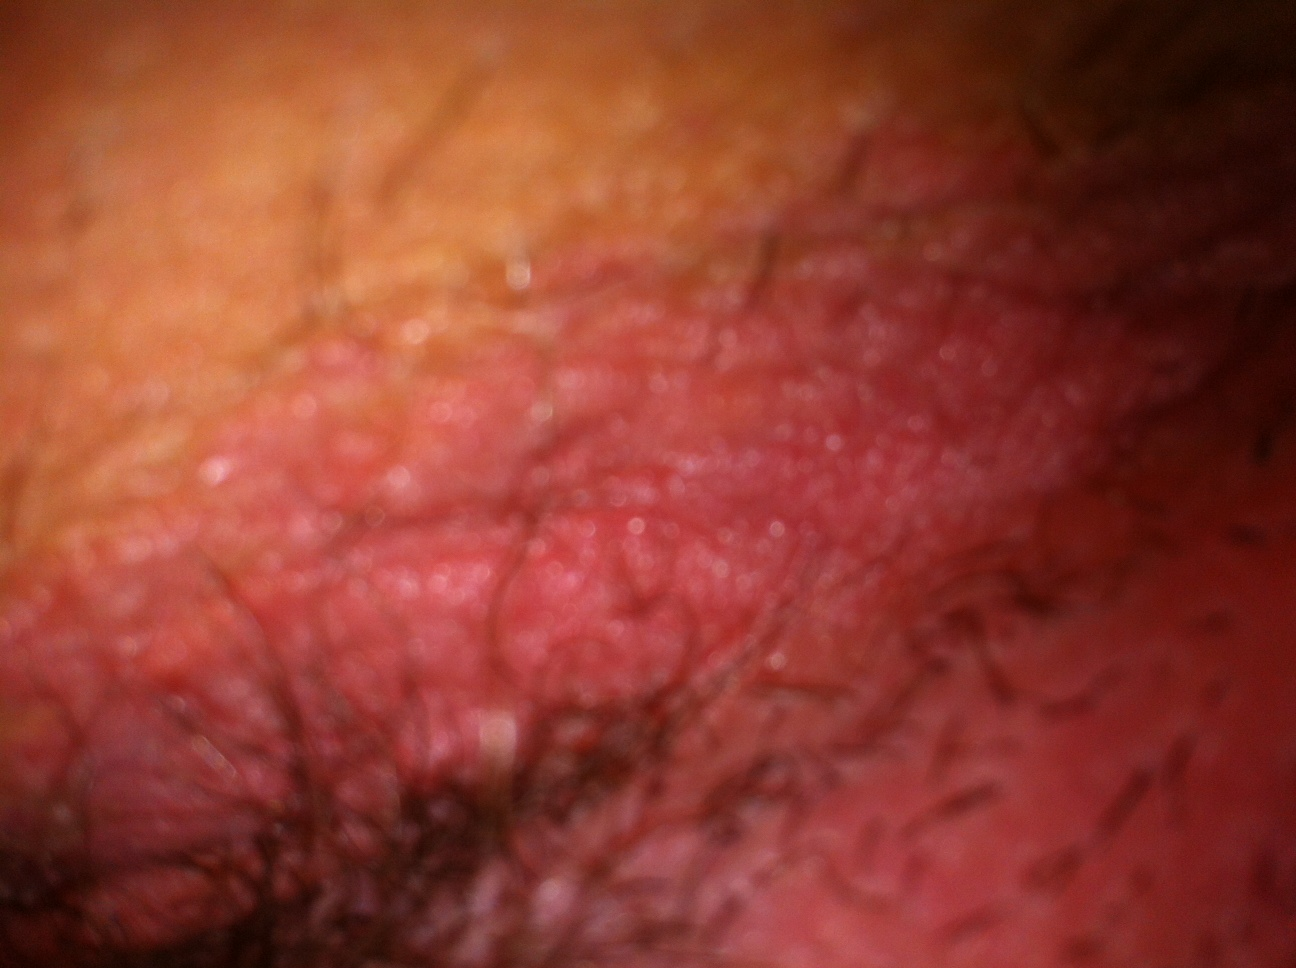 Genital rash: Common causes, pictures, and treatments ...